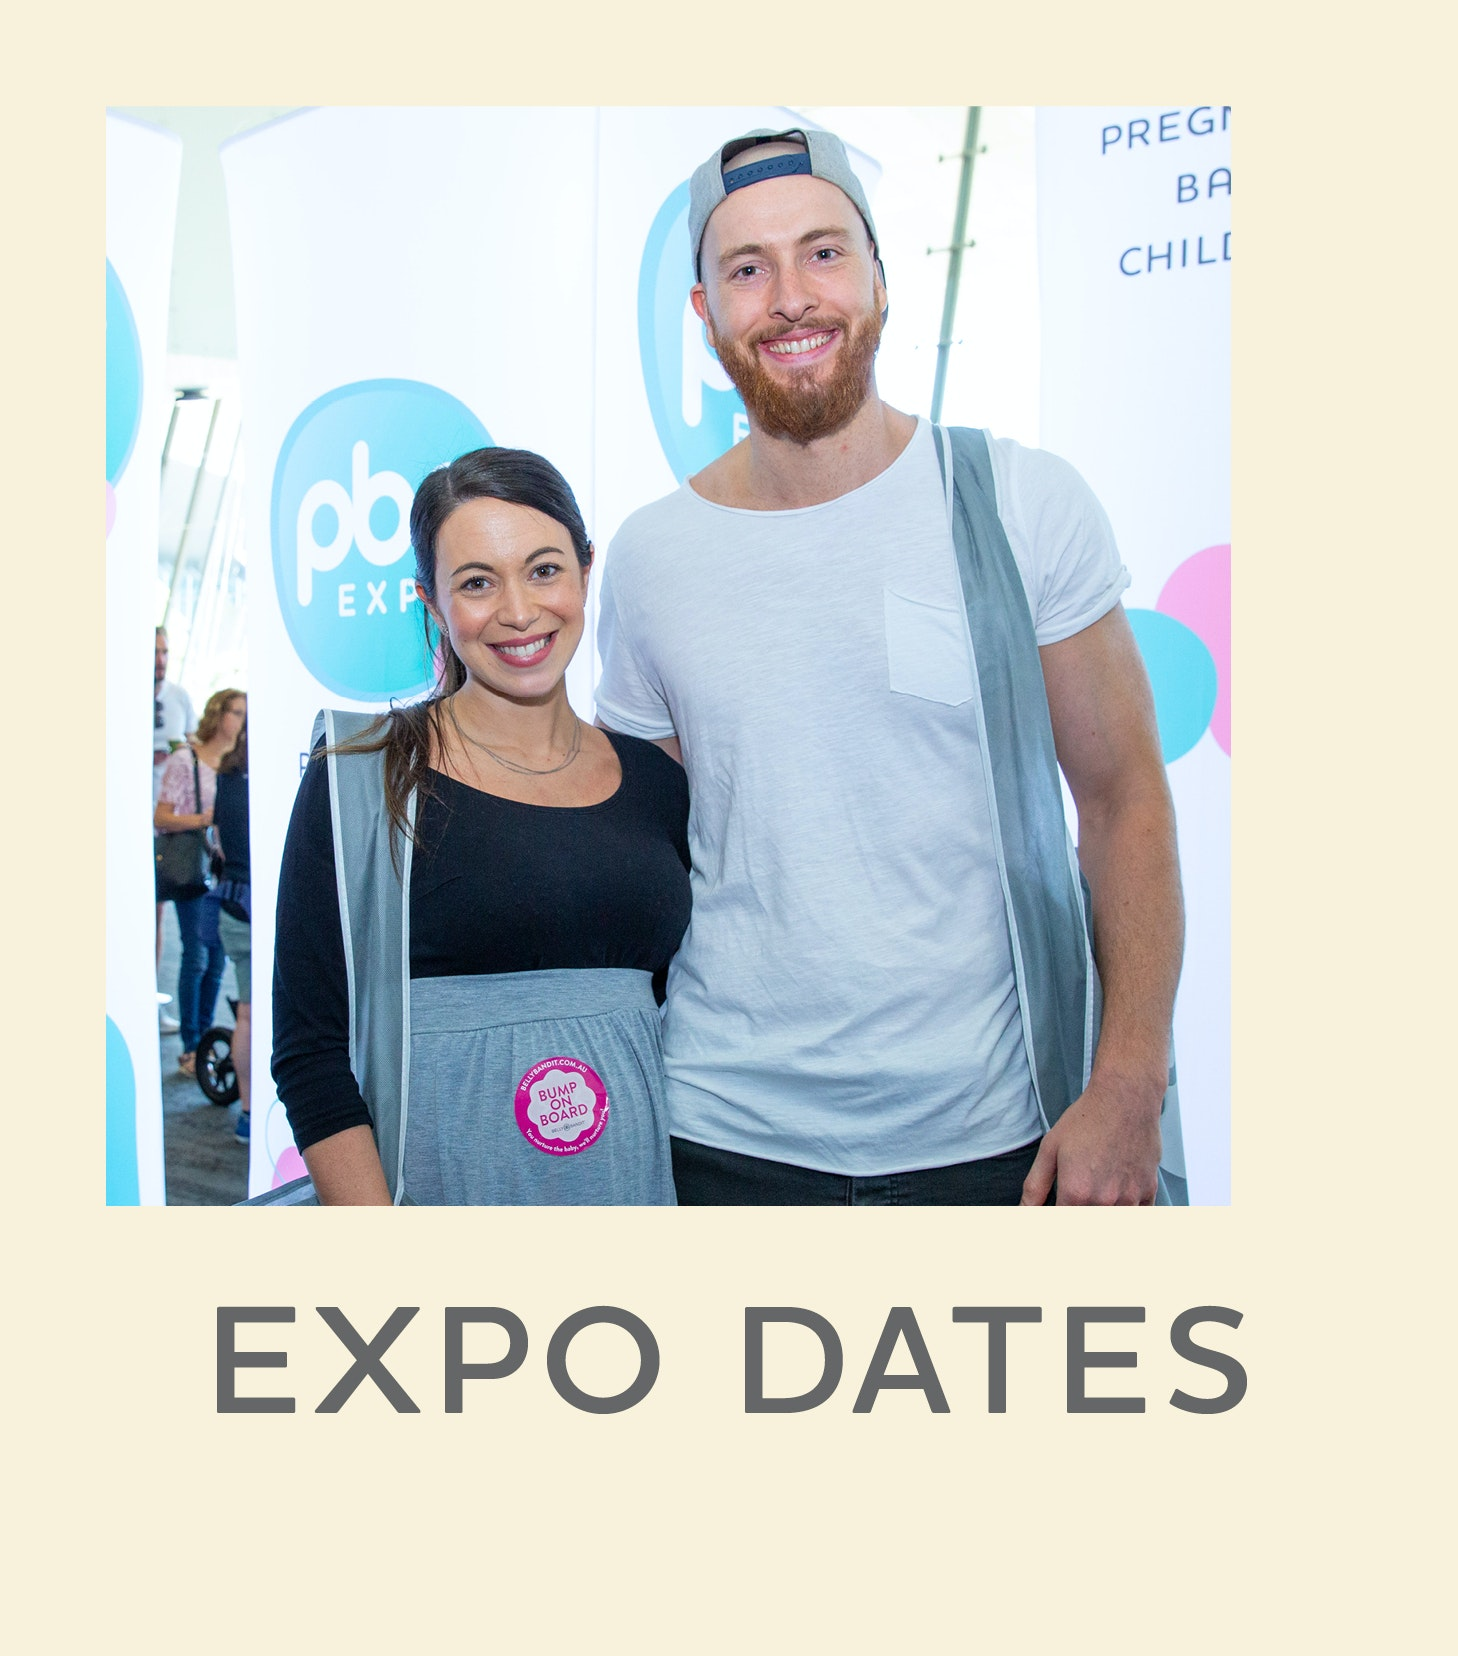 Image of couple at expo with text that reads Expo info